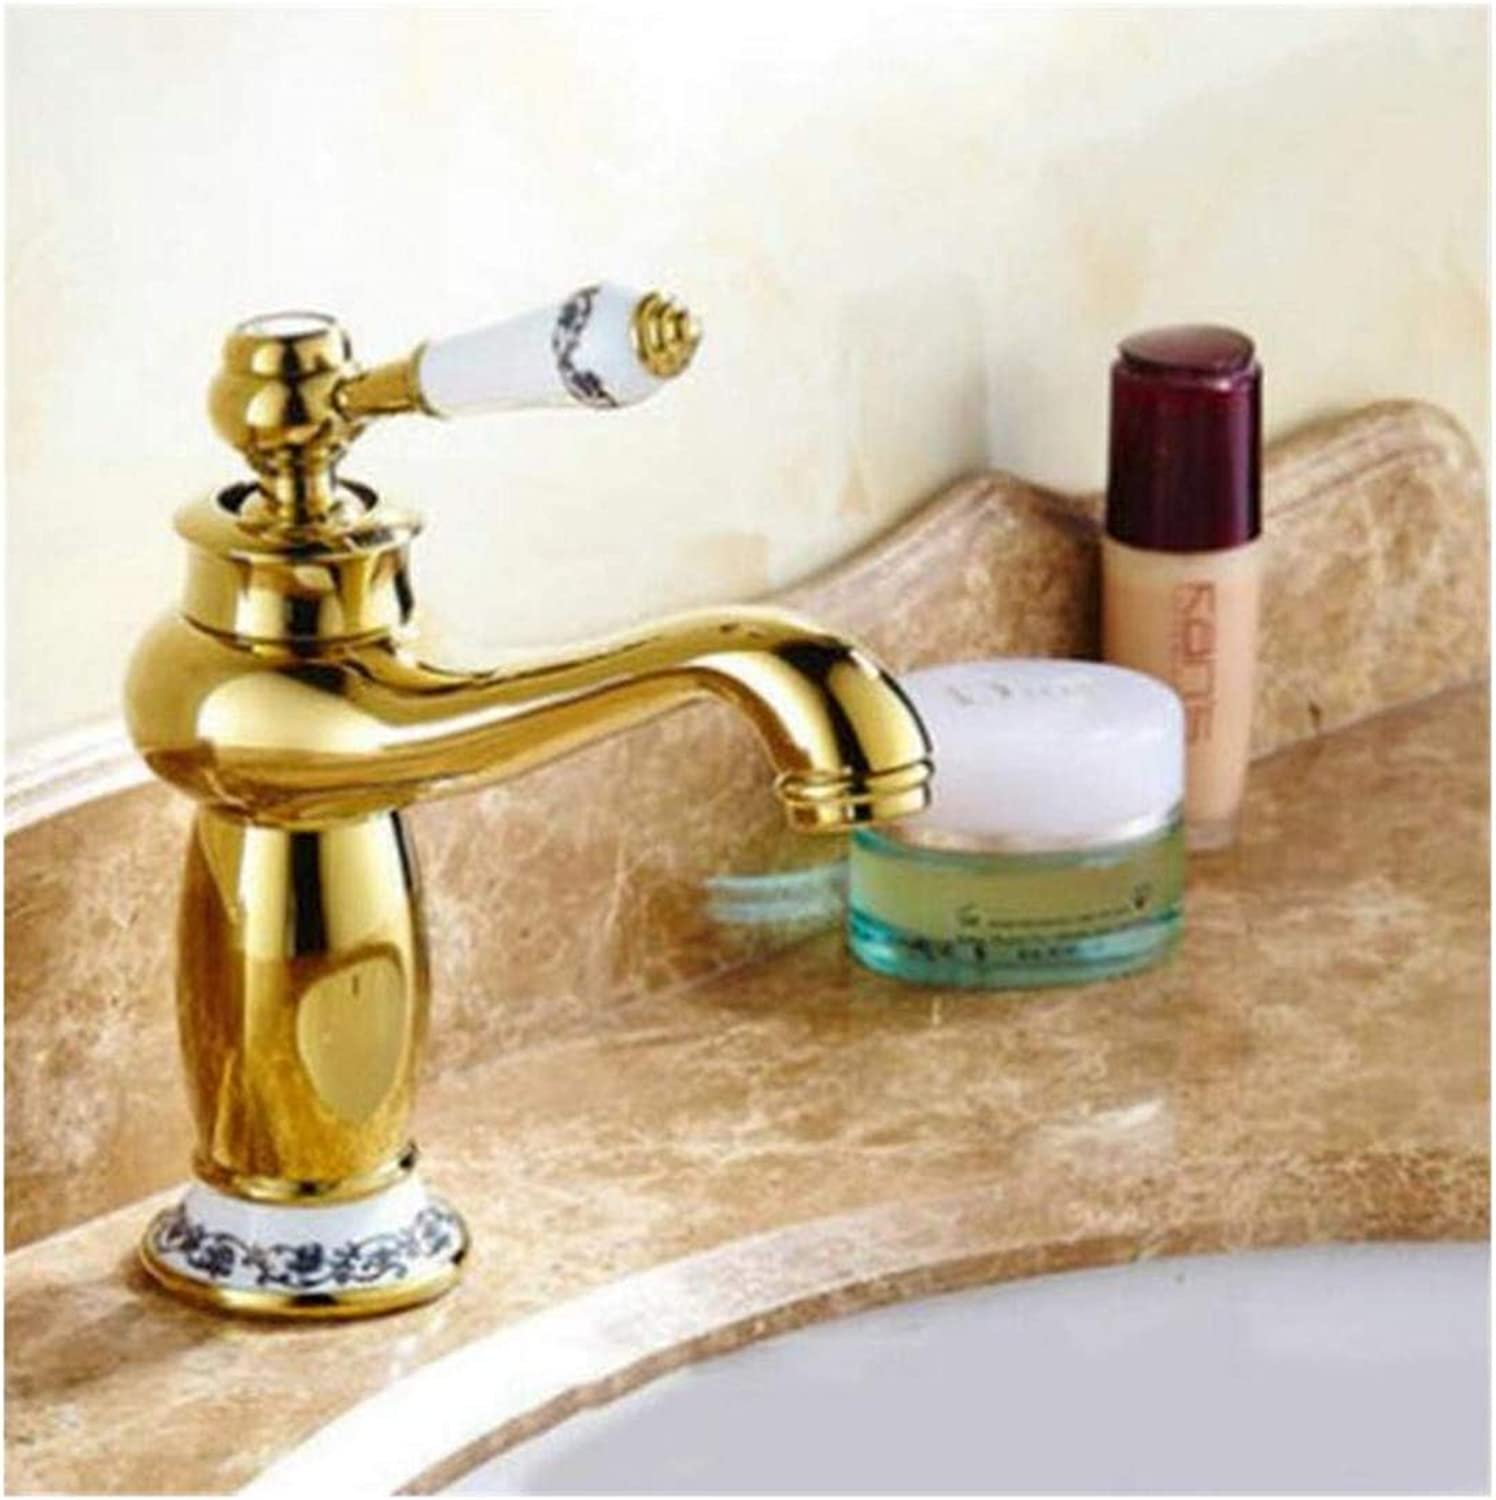 Kitchen Bath Basin Sink Bathroom Taps Faucet Washbasin Mixer Bathroom Basin Faucets Mixer Brass Ctzl1166